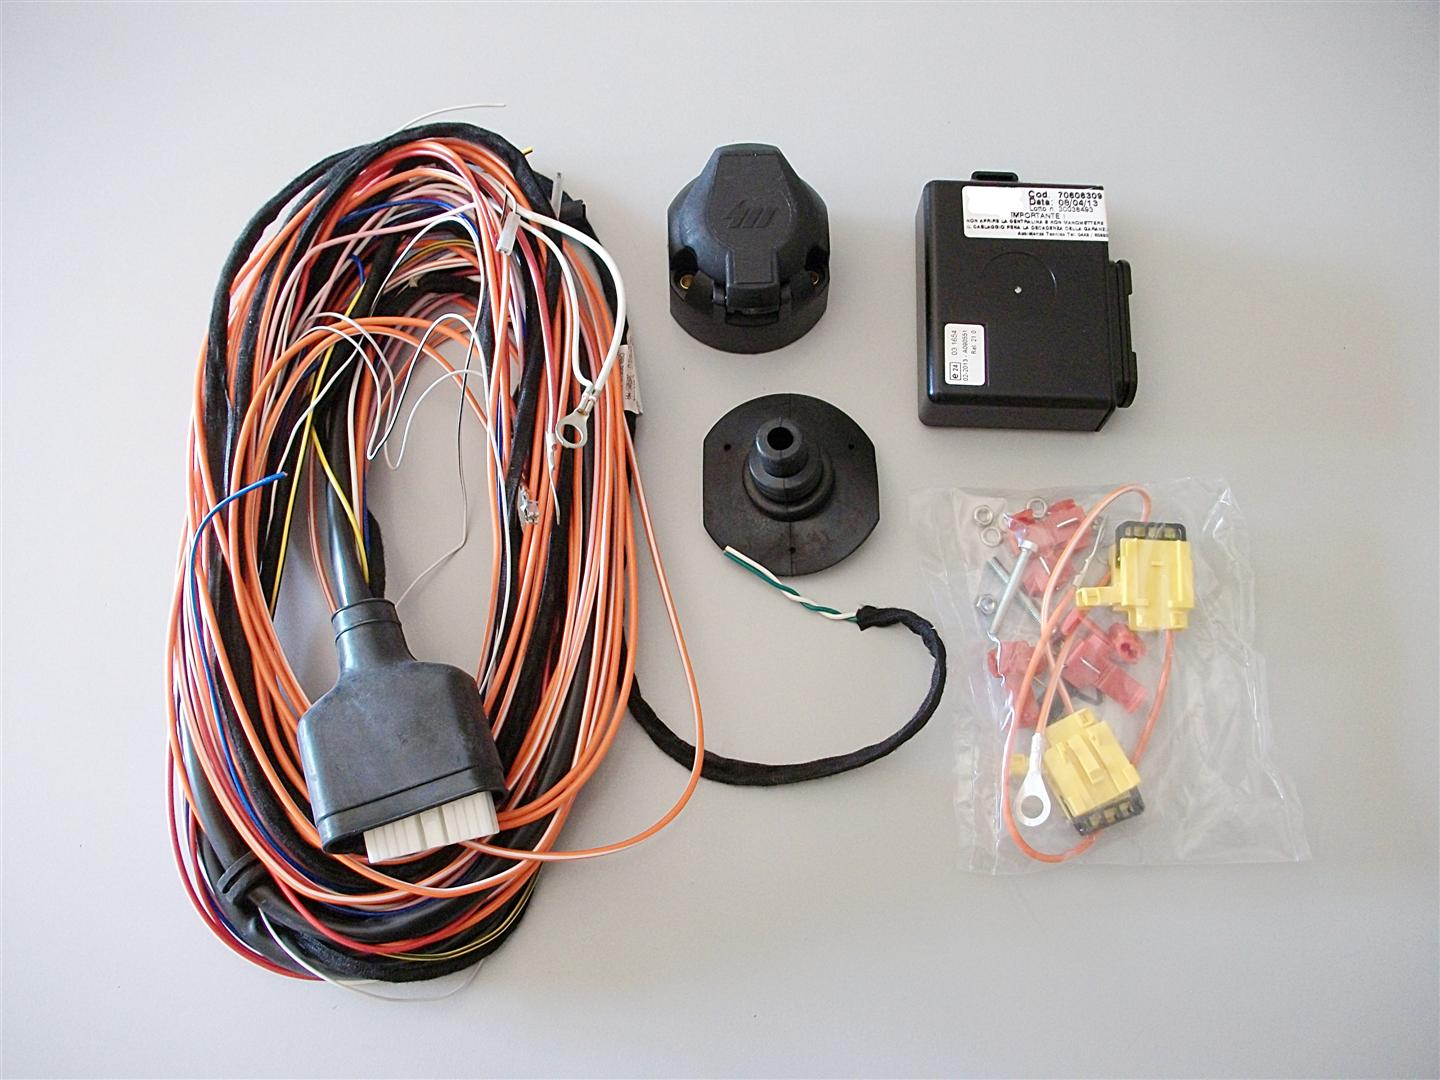 Wiring Kits Towequipe Towed Vehicle Kit Specific Means That Each Is Built And Designed For A Particular Kind Of It Can Be Connected To The Original Car Connector